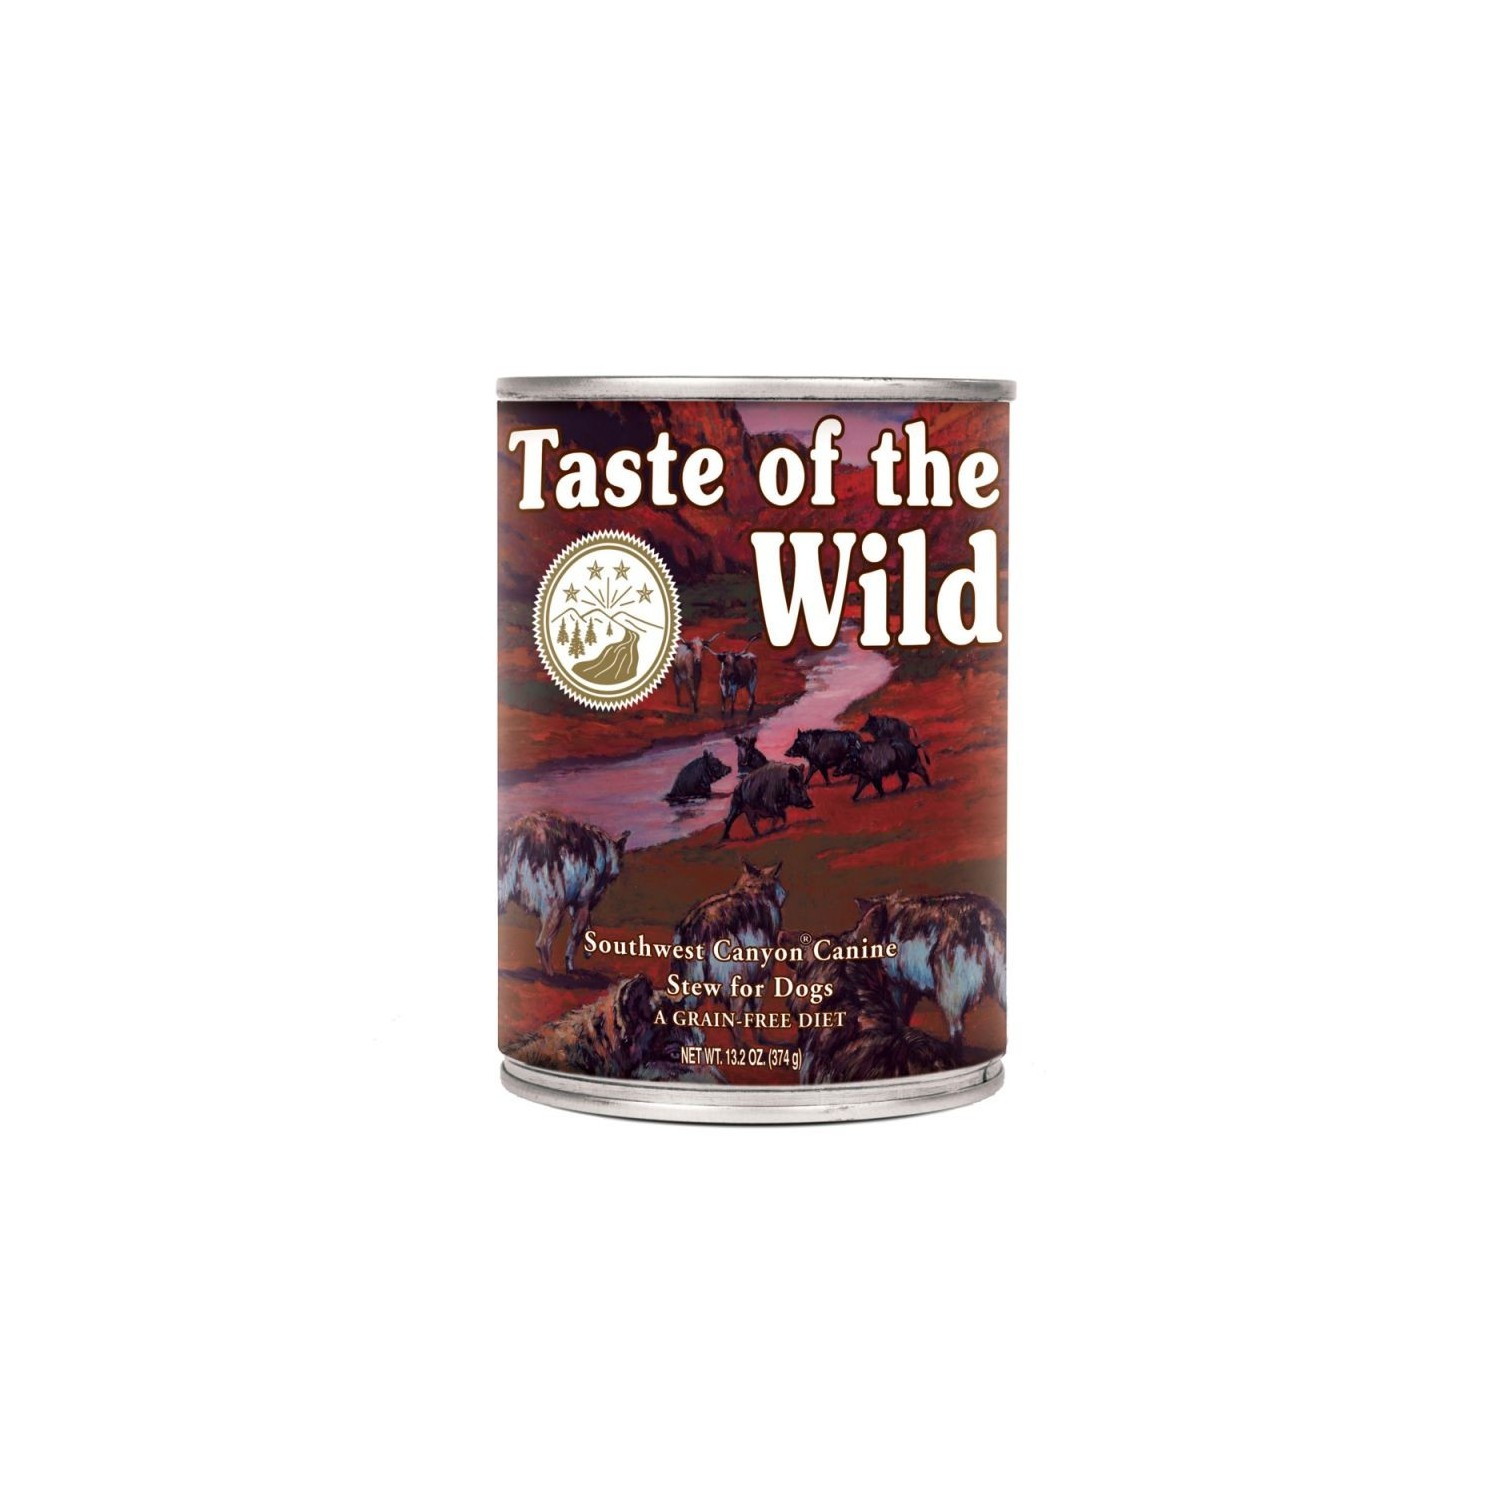 Taste of The Wild - Taste of The Wild - Southwest Canyon® Canine Formula Tocana